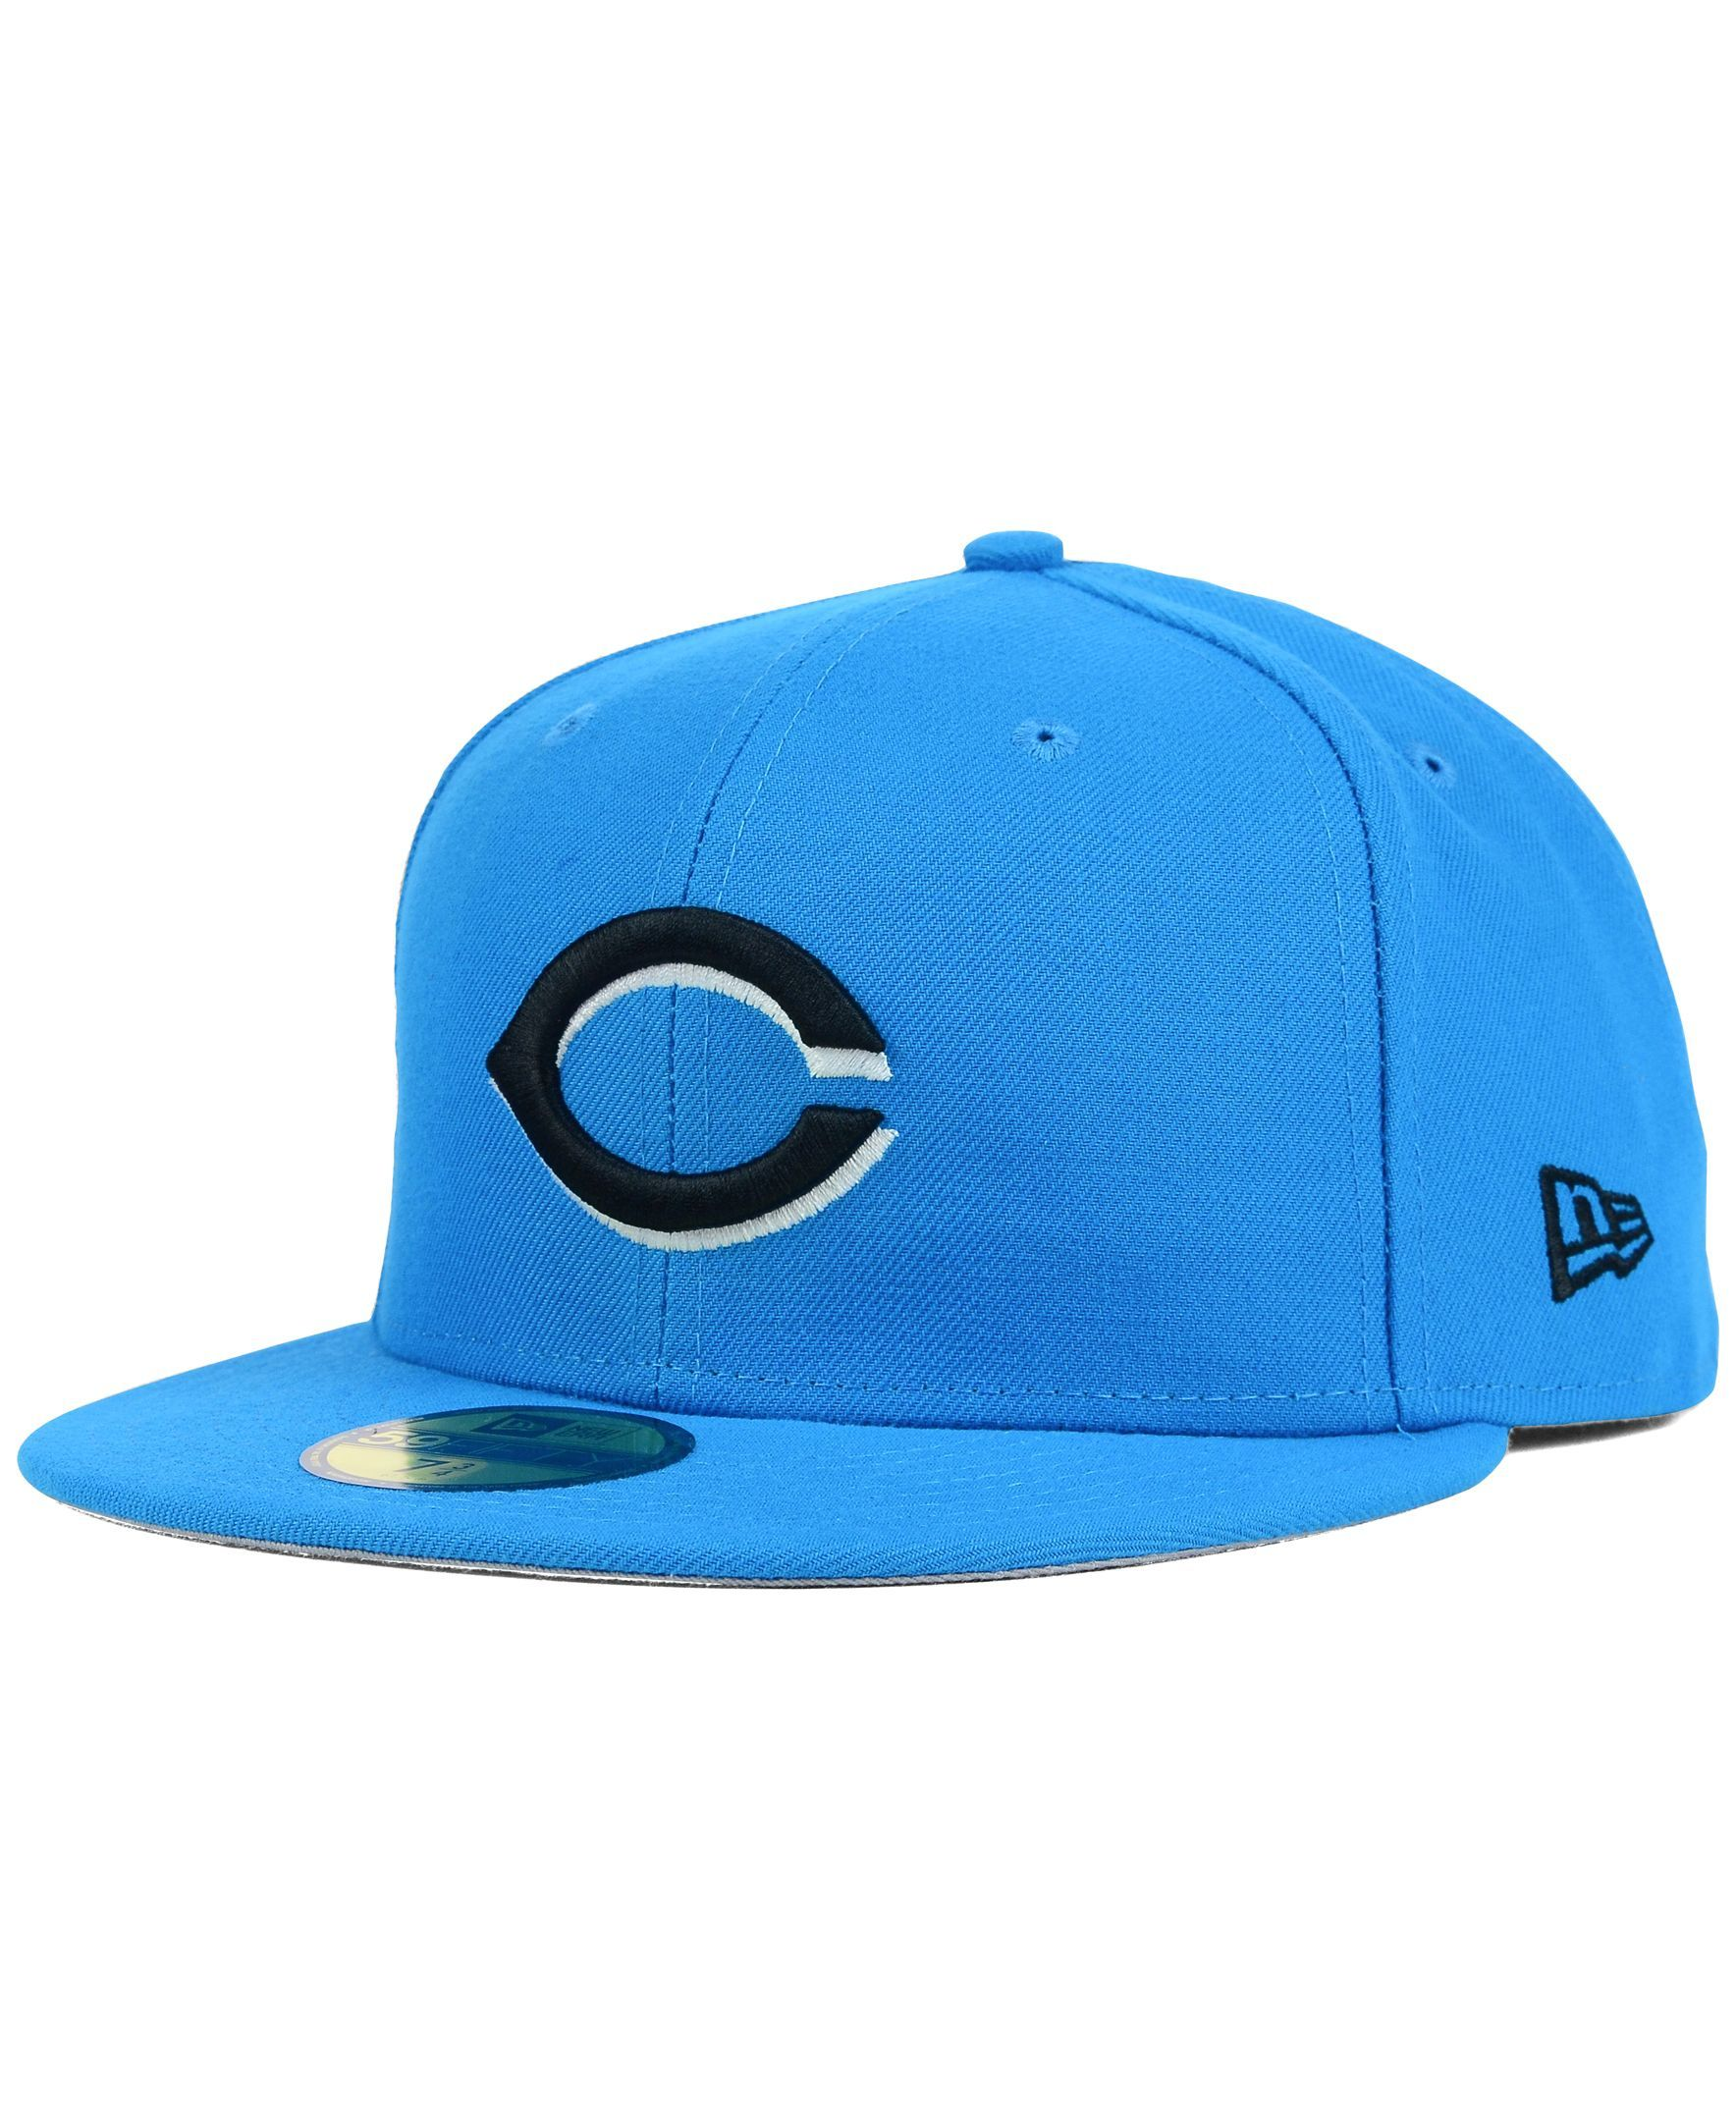 factory price 77c47 51124 New Era Cincinnati Reds C-Dub 59FIFTY Cap